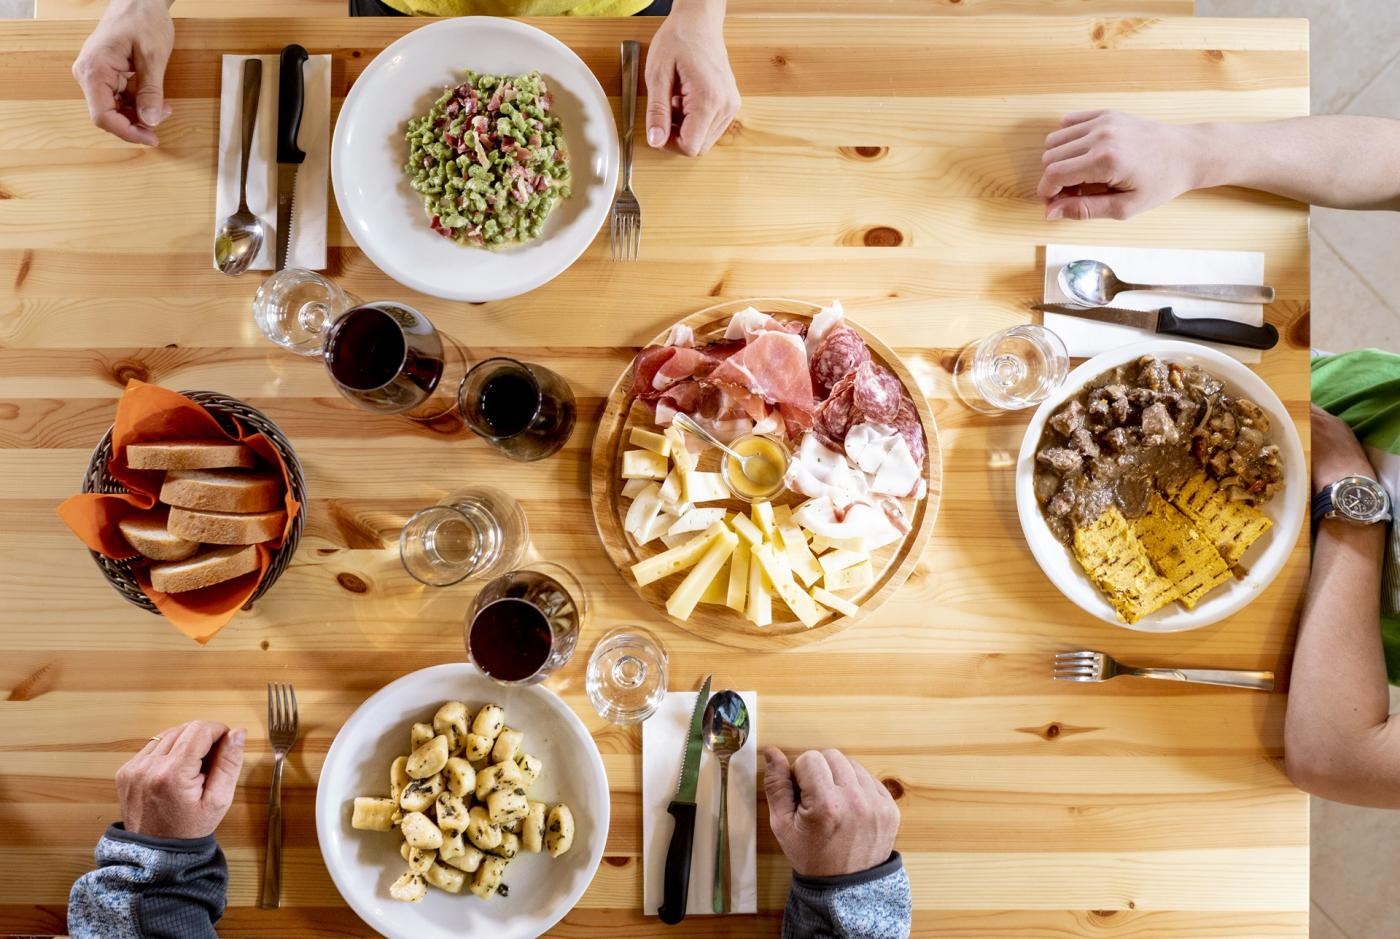 6 local products to bring a piece of Trentino to your own home